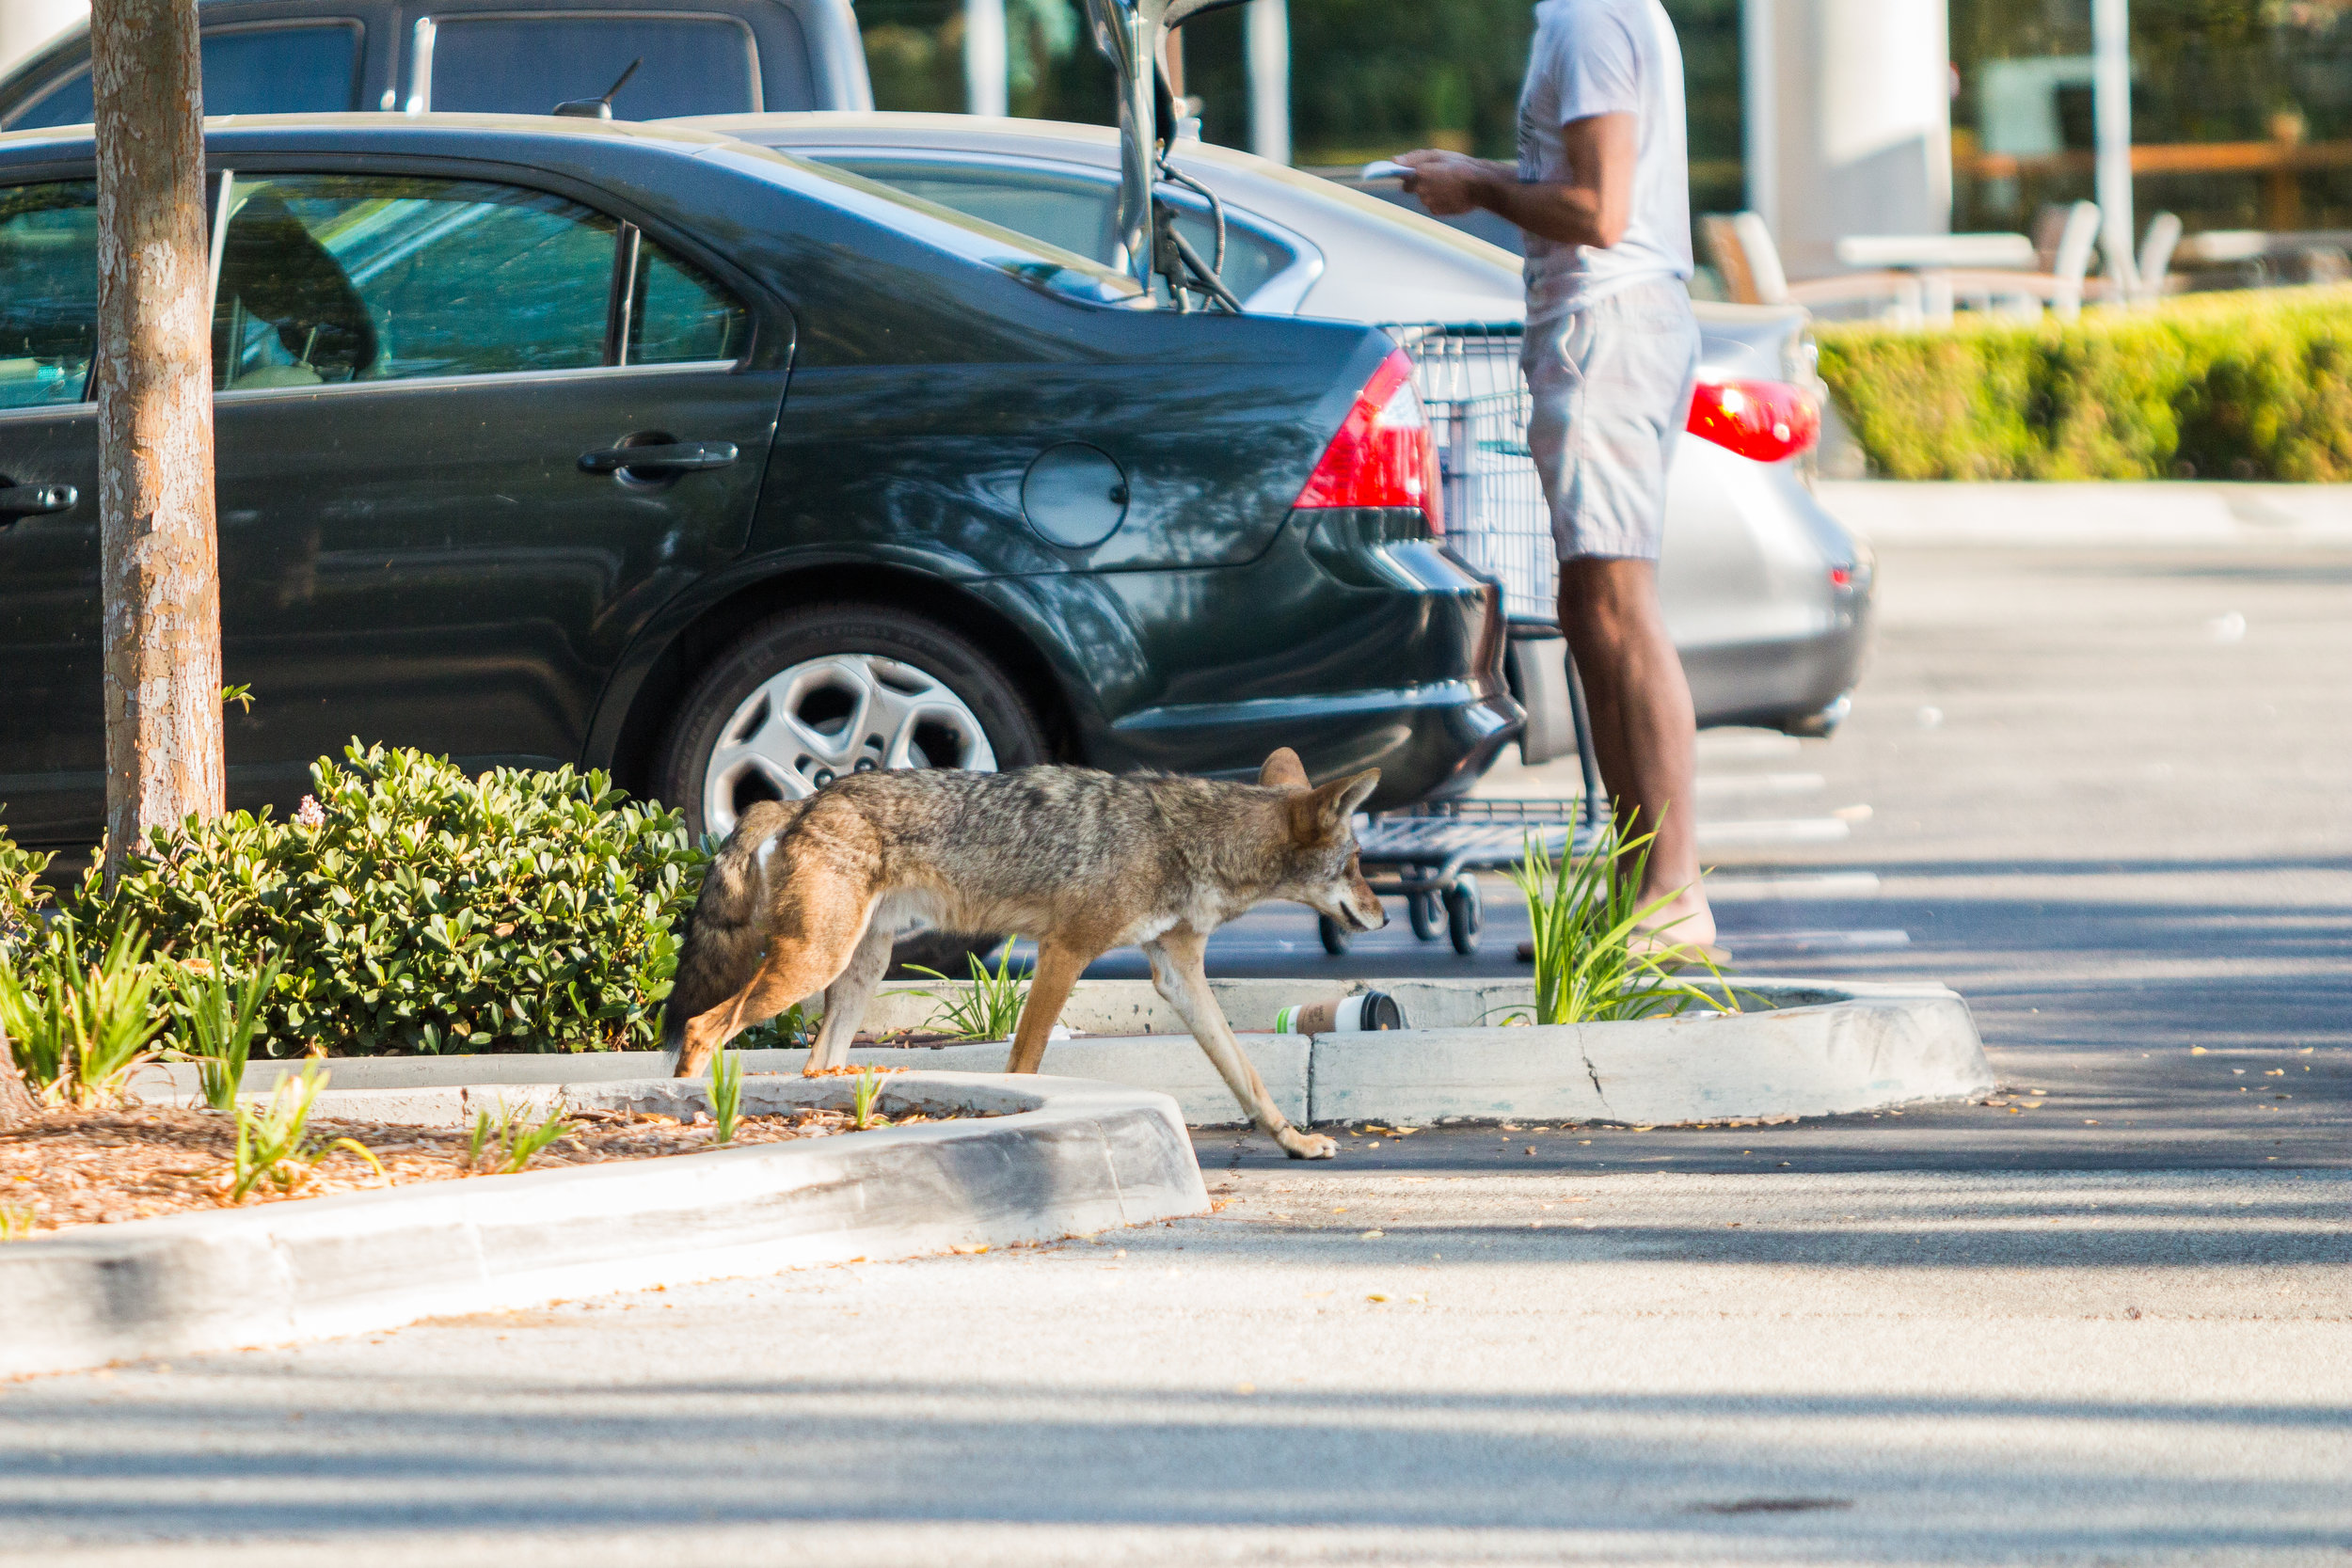 A coyote trots past citizens in urban California. (Photo | NPS)